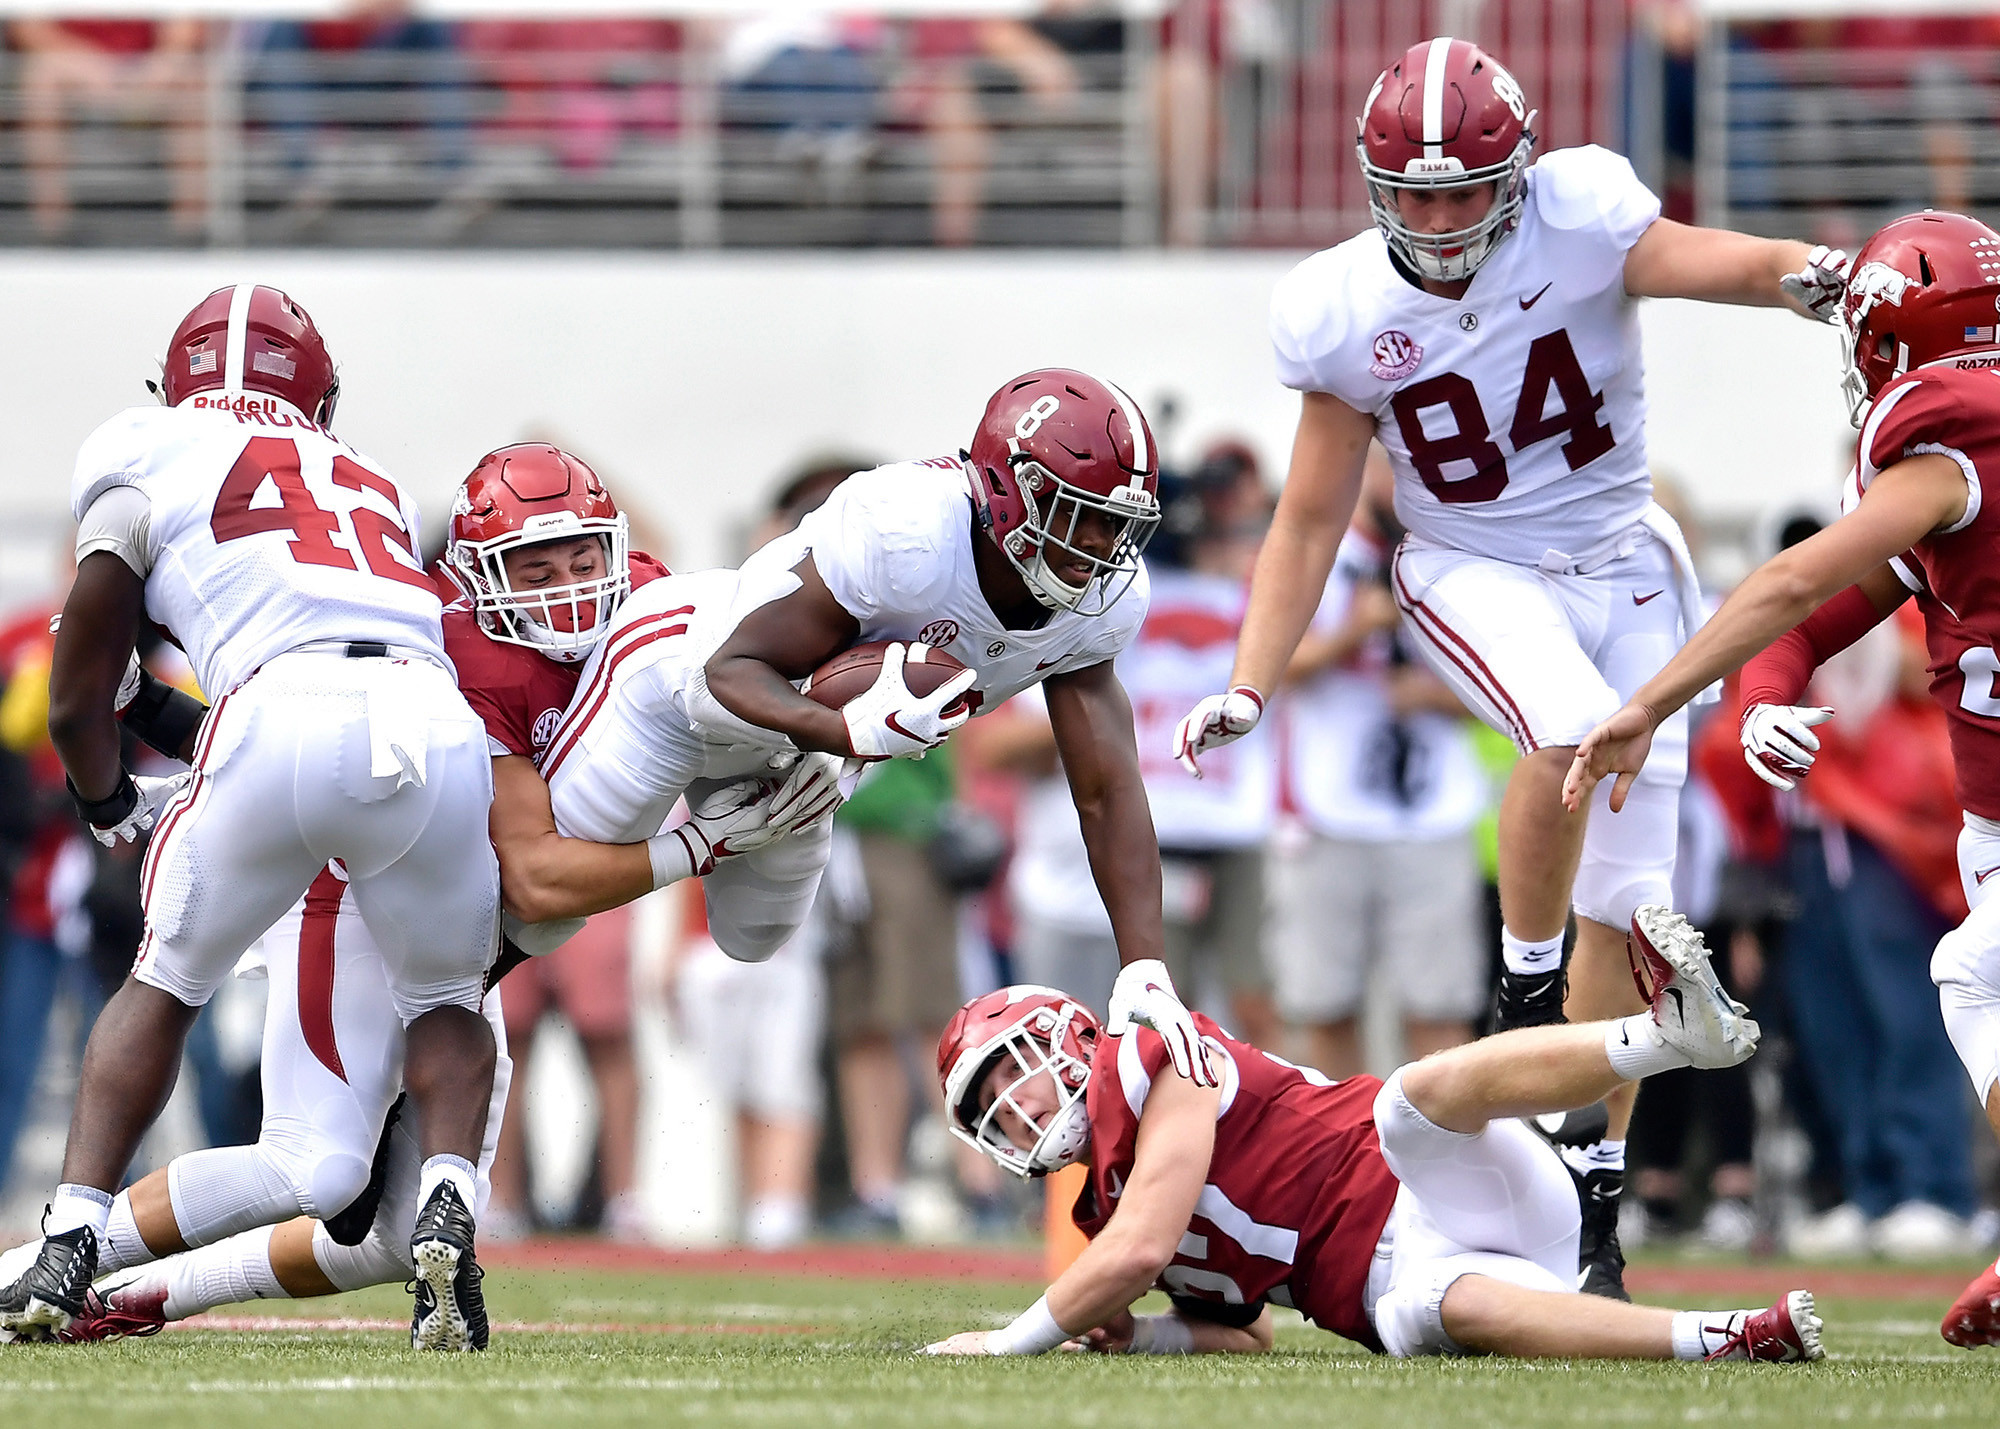 Alabama Crimson Tide running back Josh Jacobs (8) in action during the first half of the NCAA football game at Razorback Stadium on Oct. 6, 2018, in Fayetteville, Ark. Alabama defeated Arkansas 65-31. (Photo by Lee Walls)